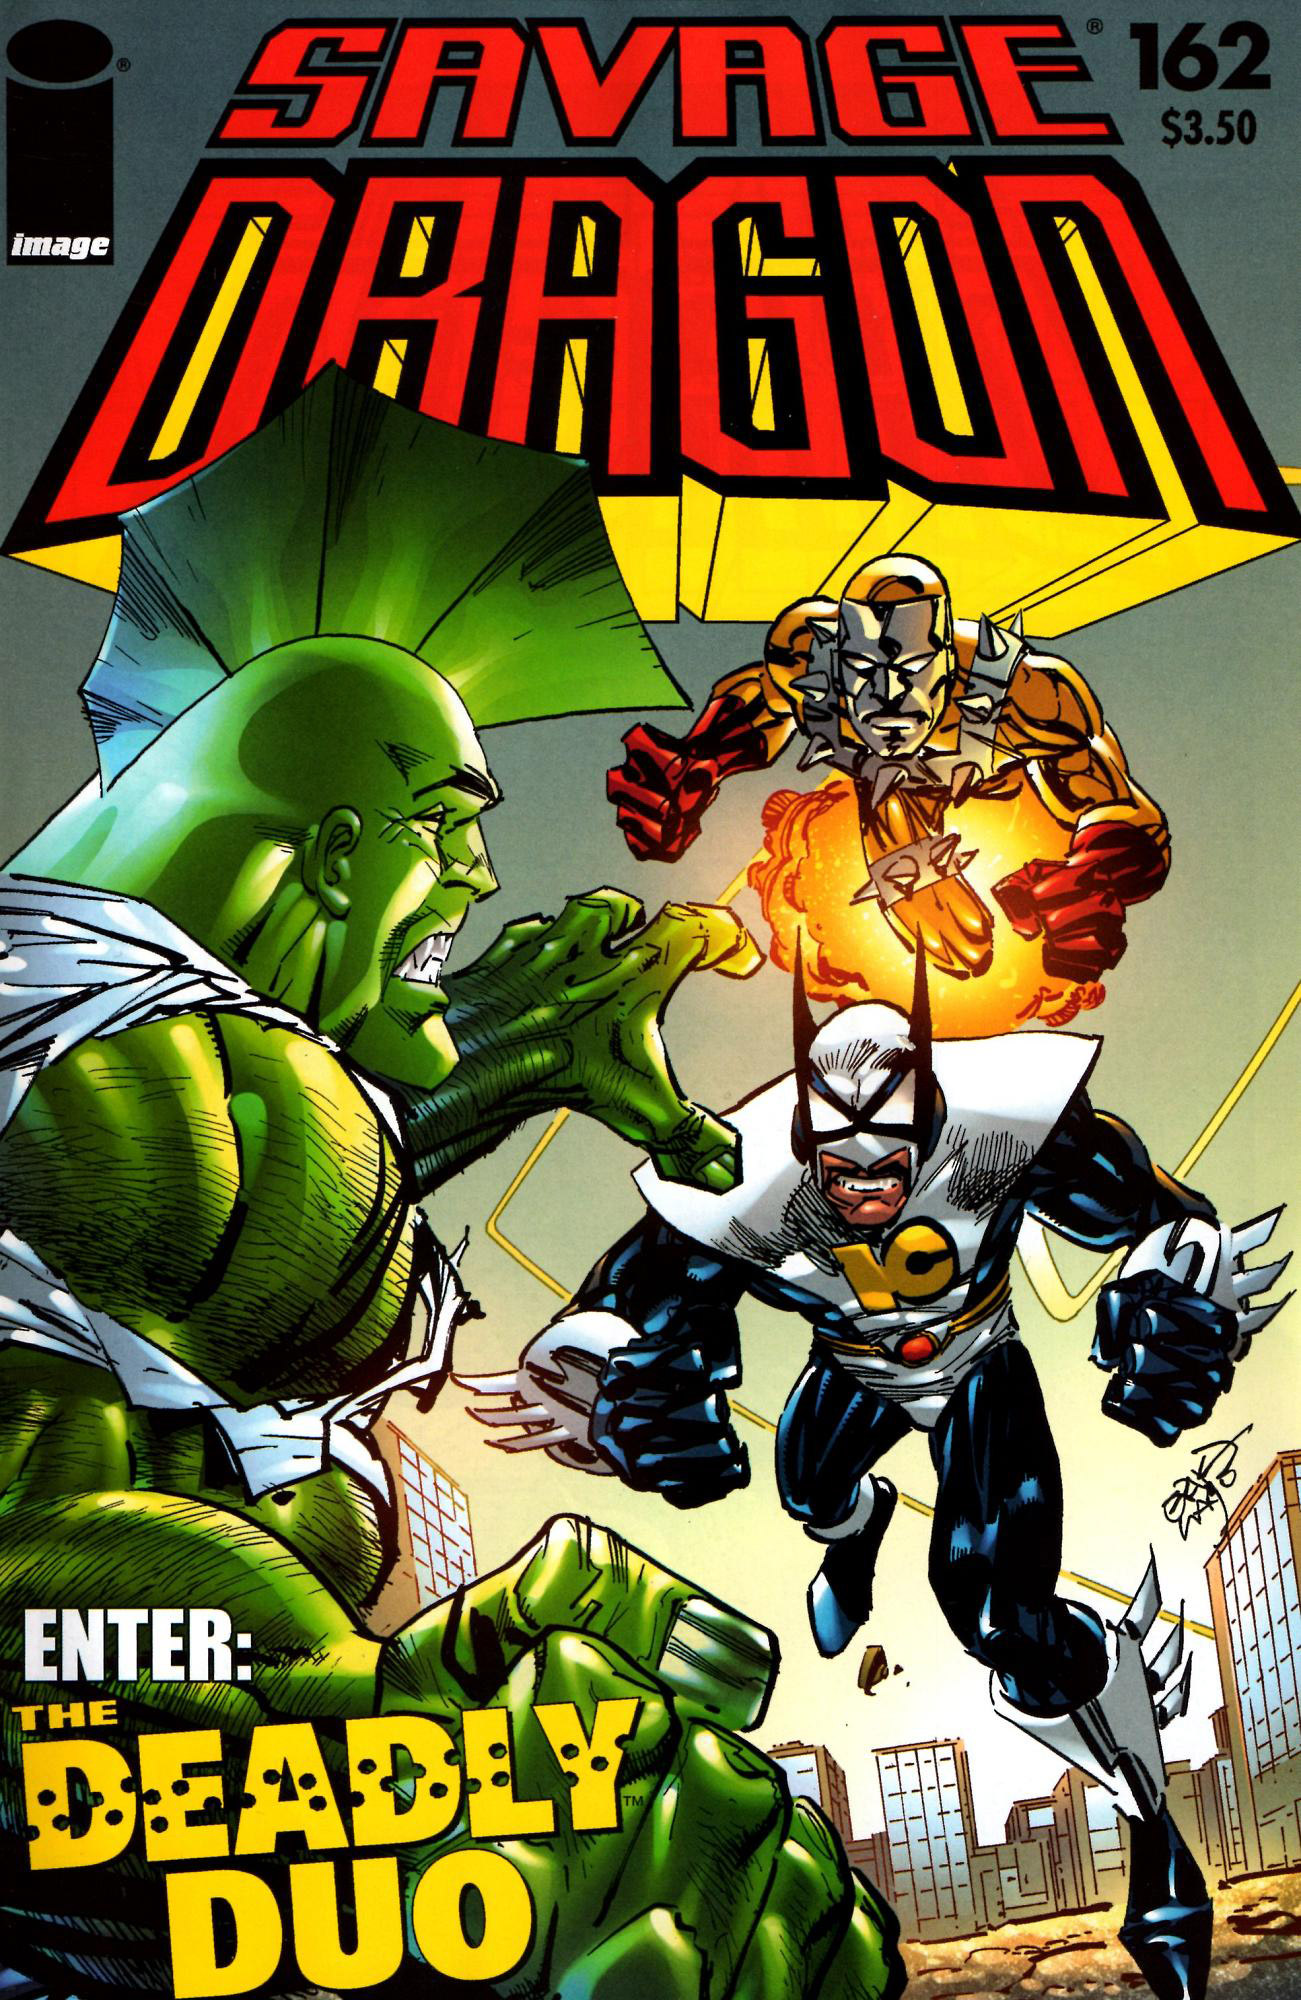 Cover Savage Dragon Vol.2 #162